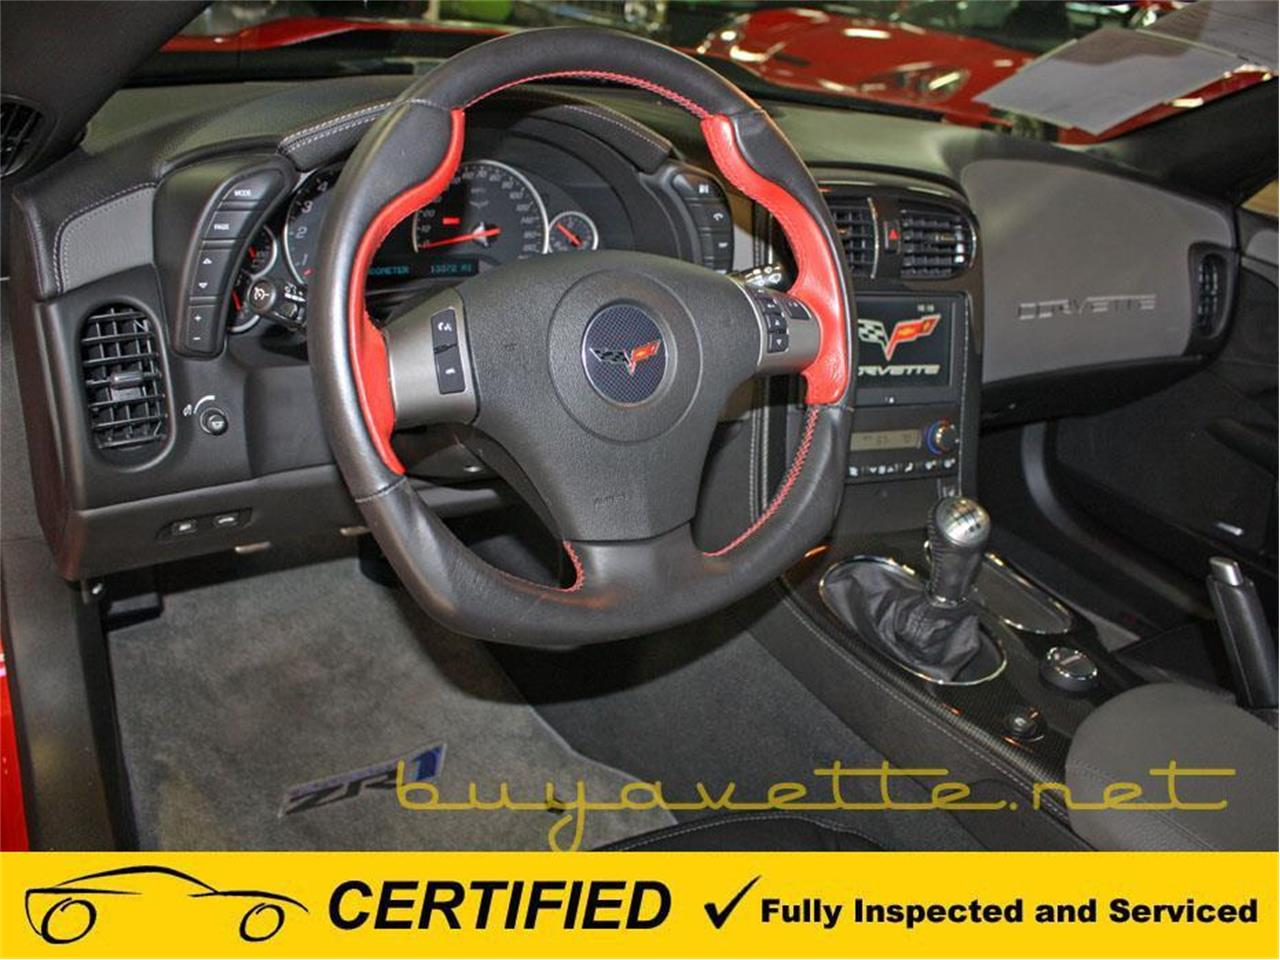 2010 Chevrolet Corvette for sale in Atlanta, GA – photo 12